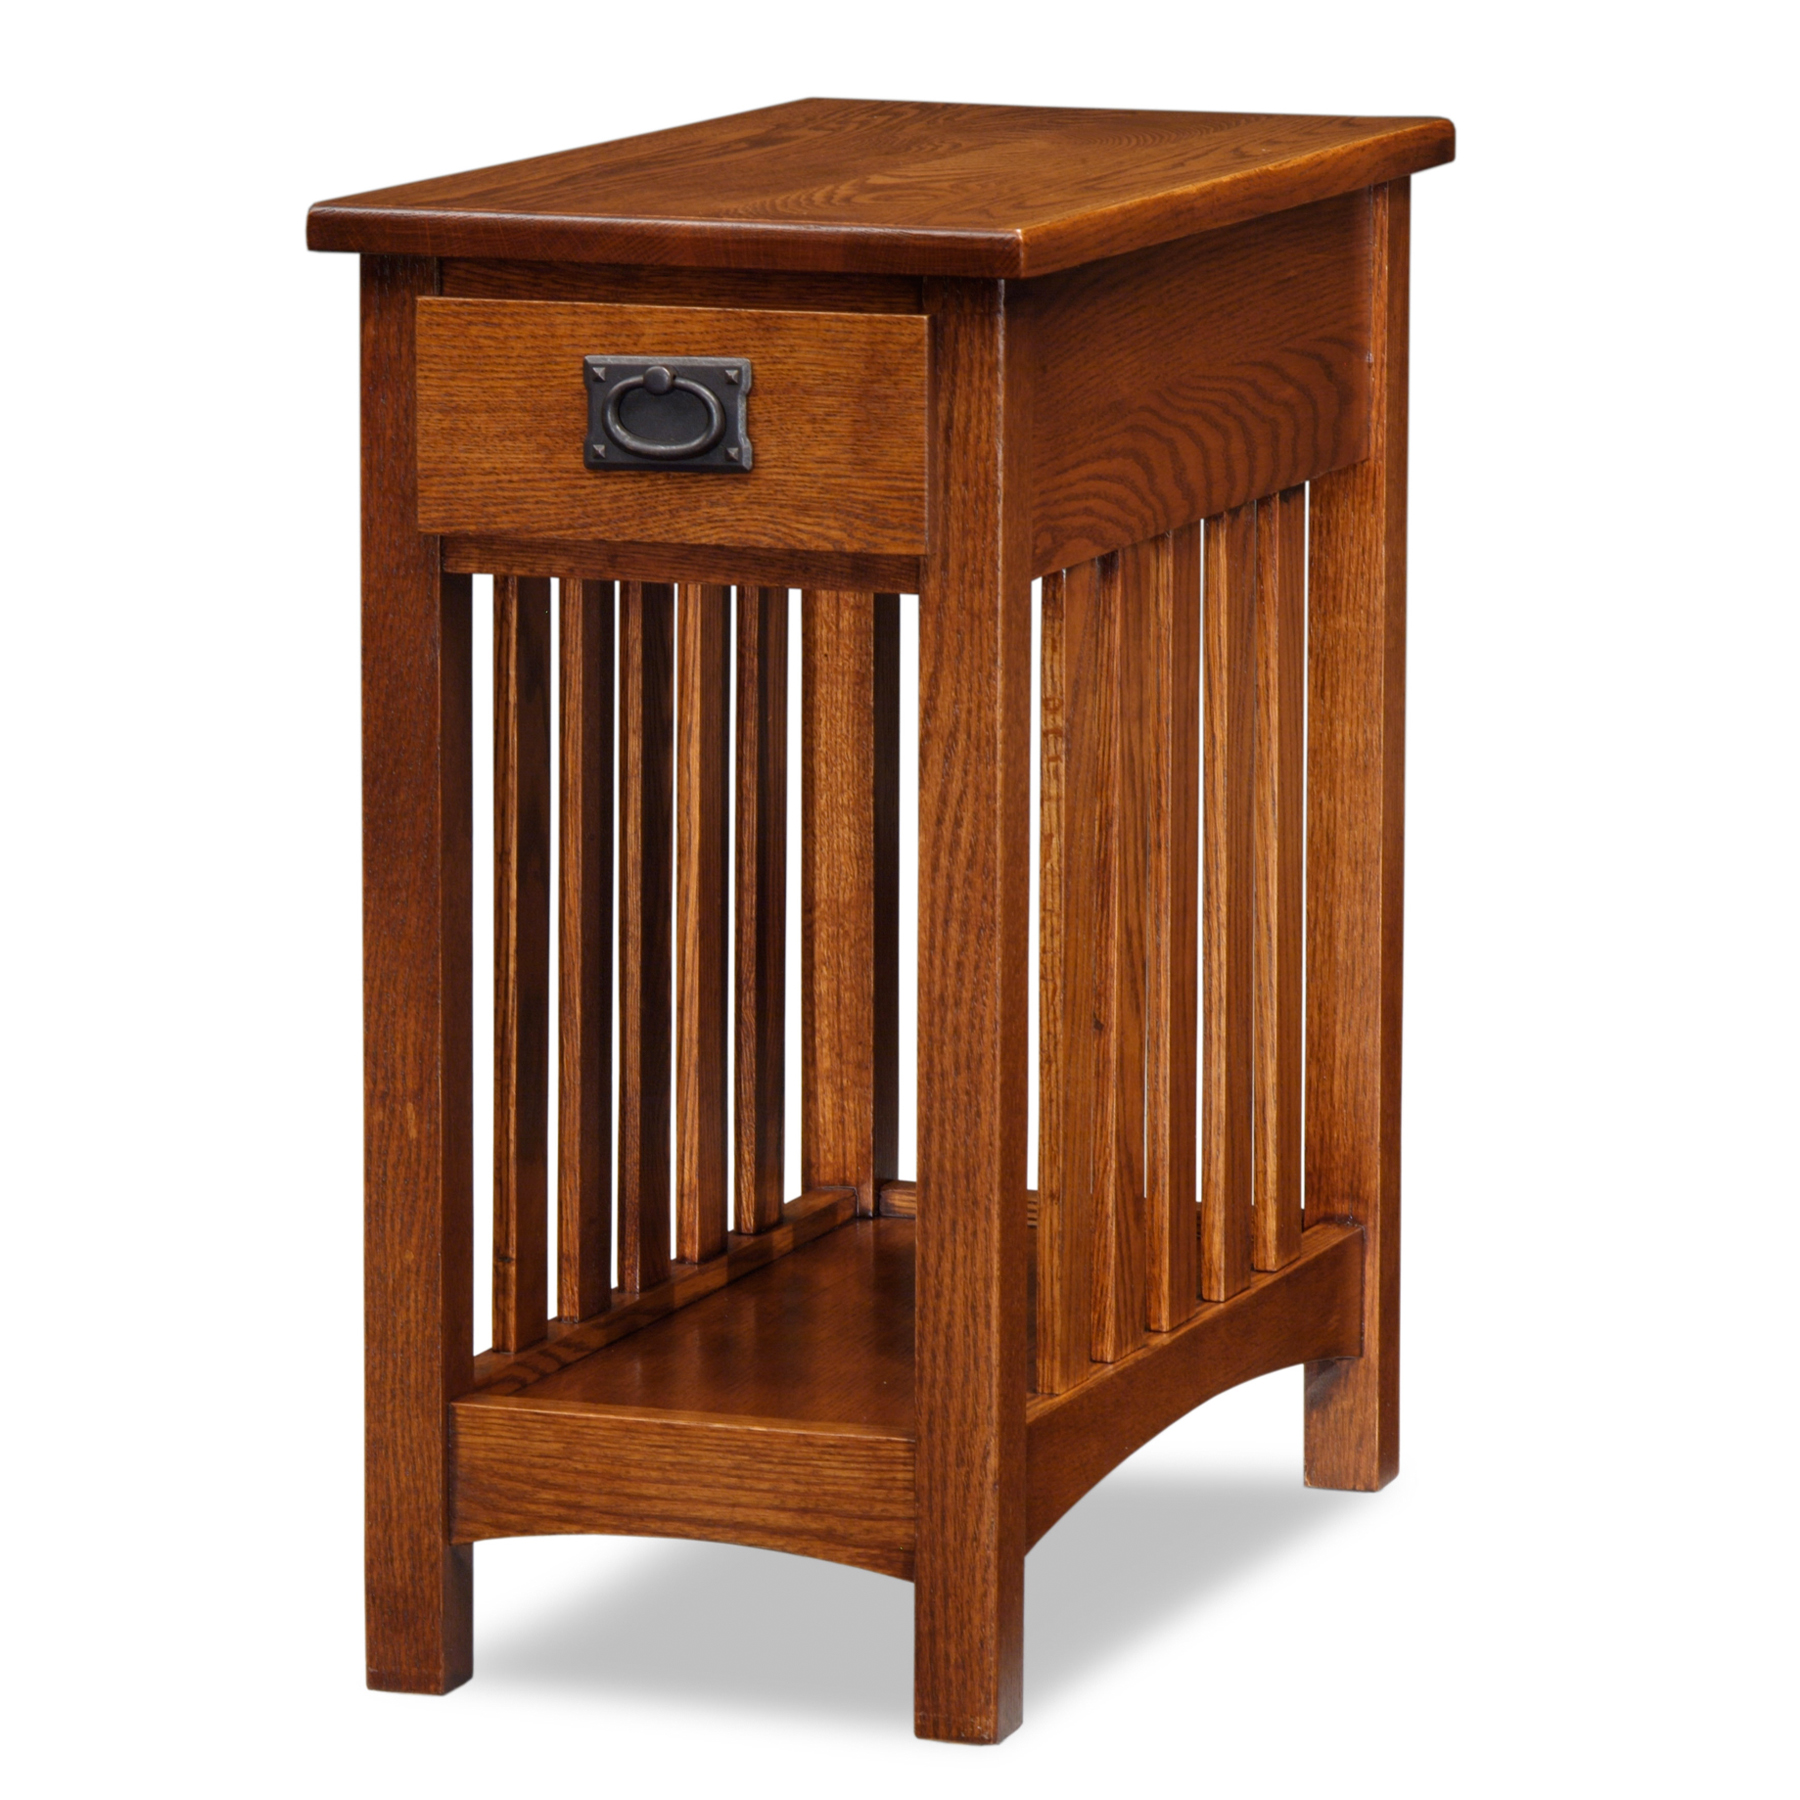 Image of Leick 8202 Mission End Table with Shelf - Medium Oak, Brown